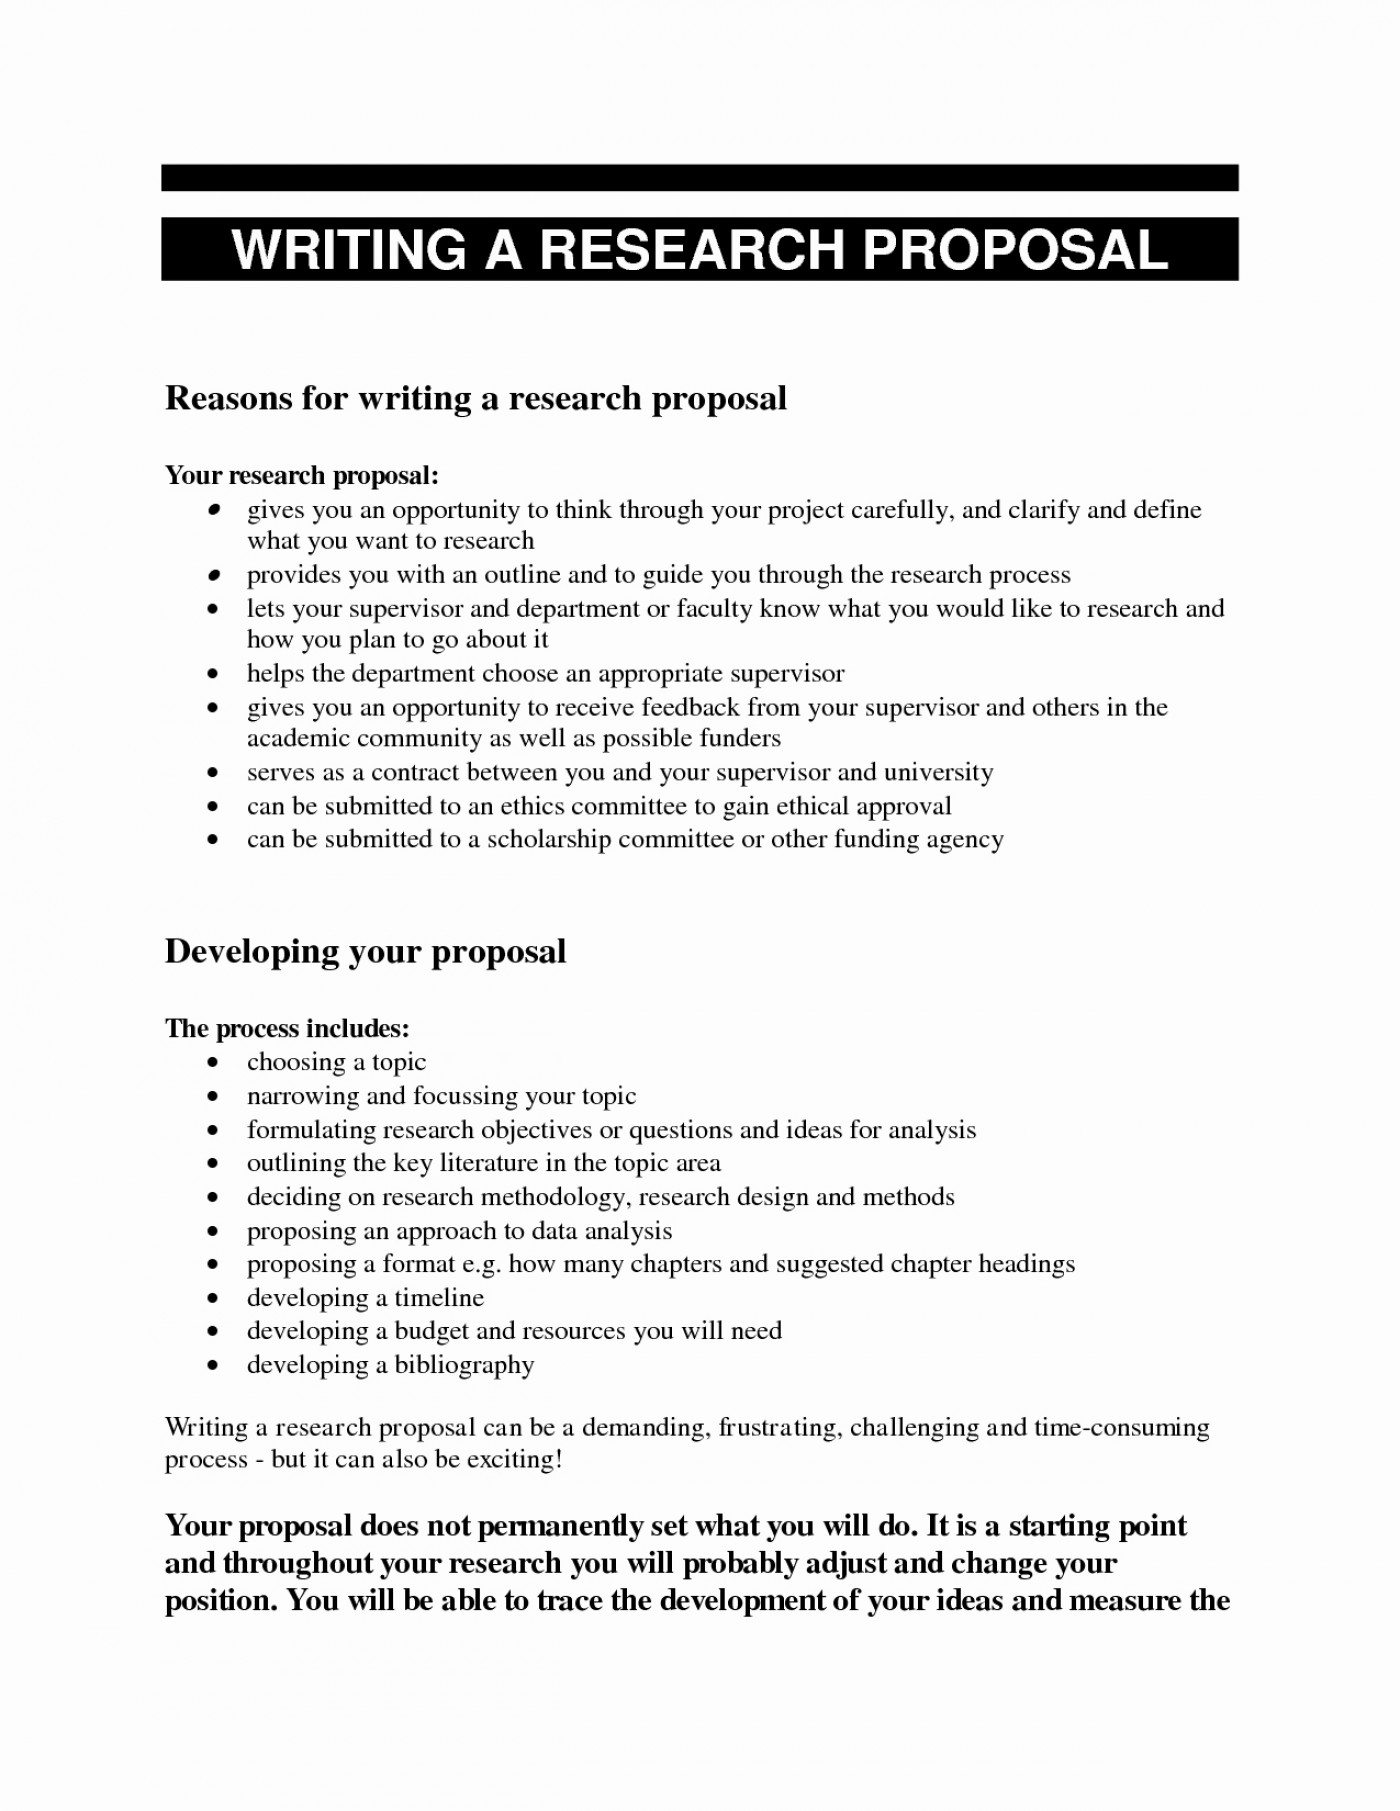 012 Proposal Research Topic Ideas Paper Sociology Topics Beautiful Propose Solution Essay Astounding Education Psychology Business 1400